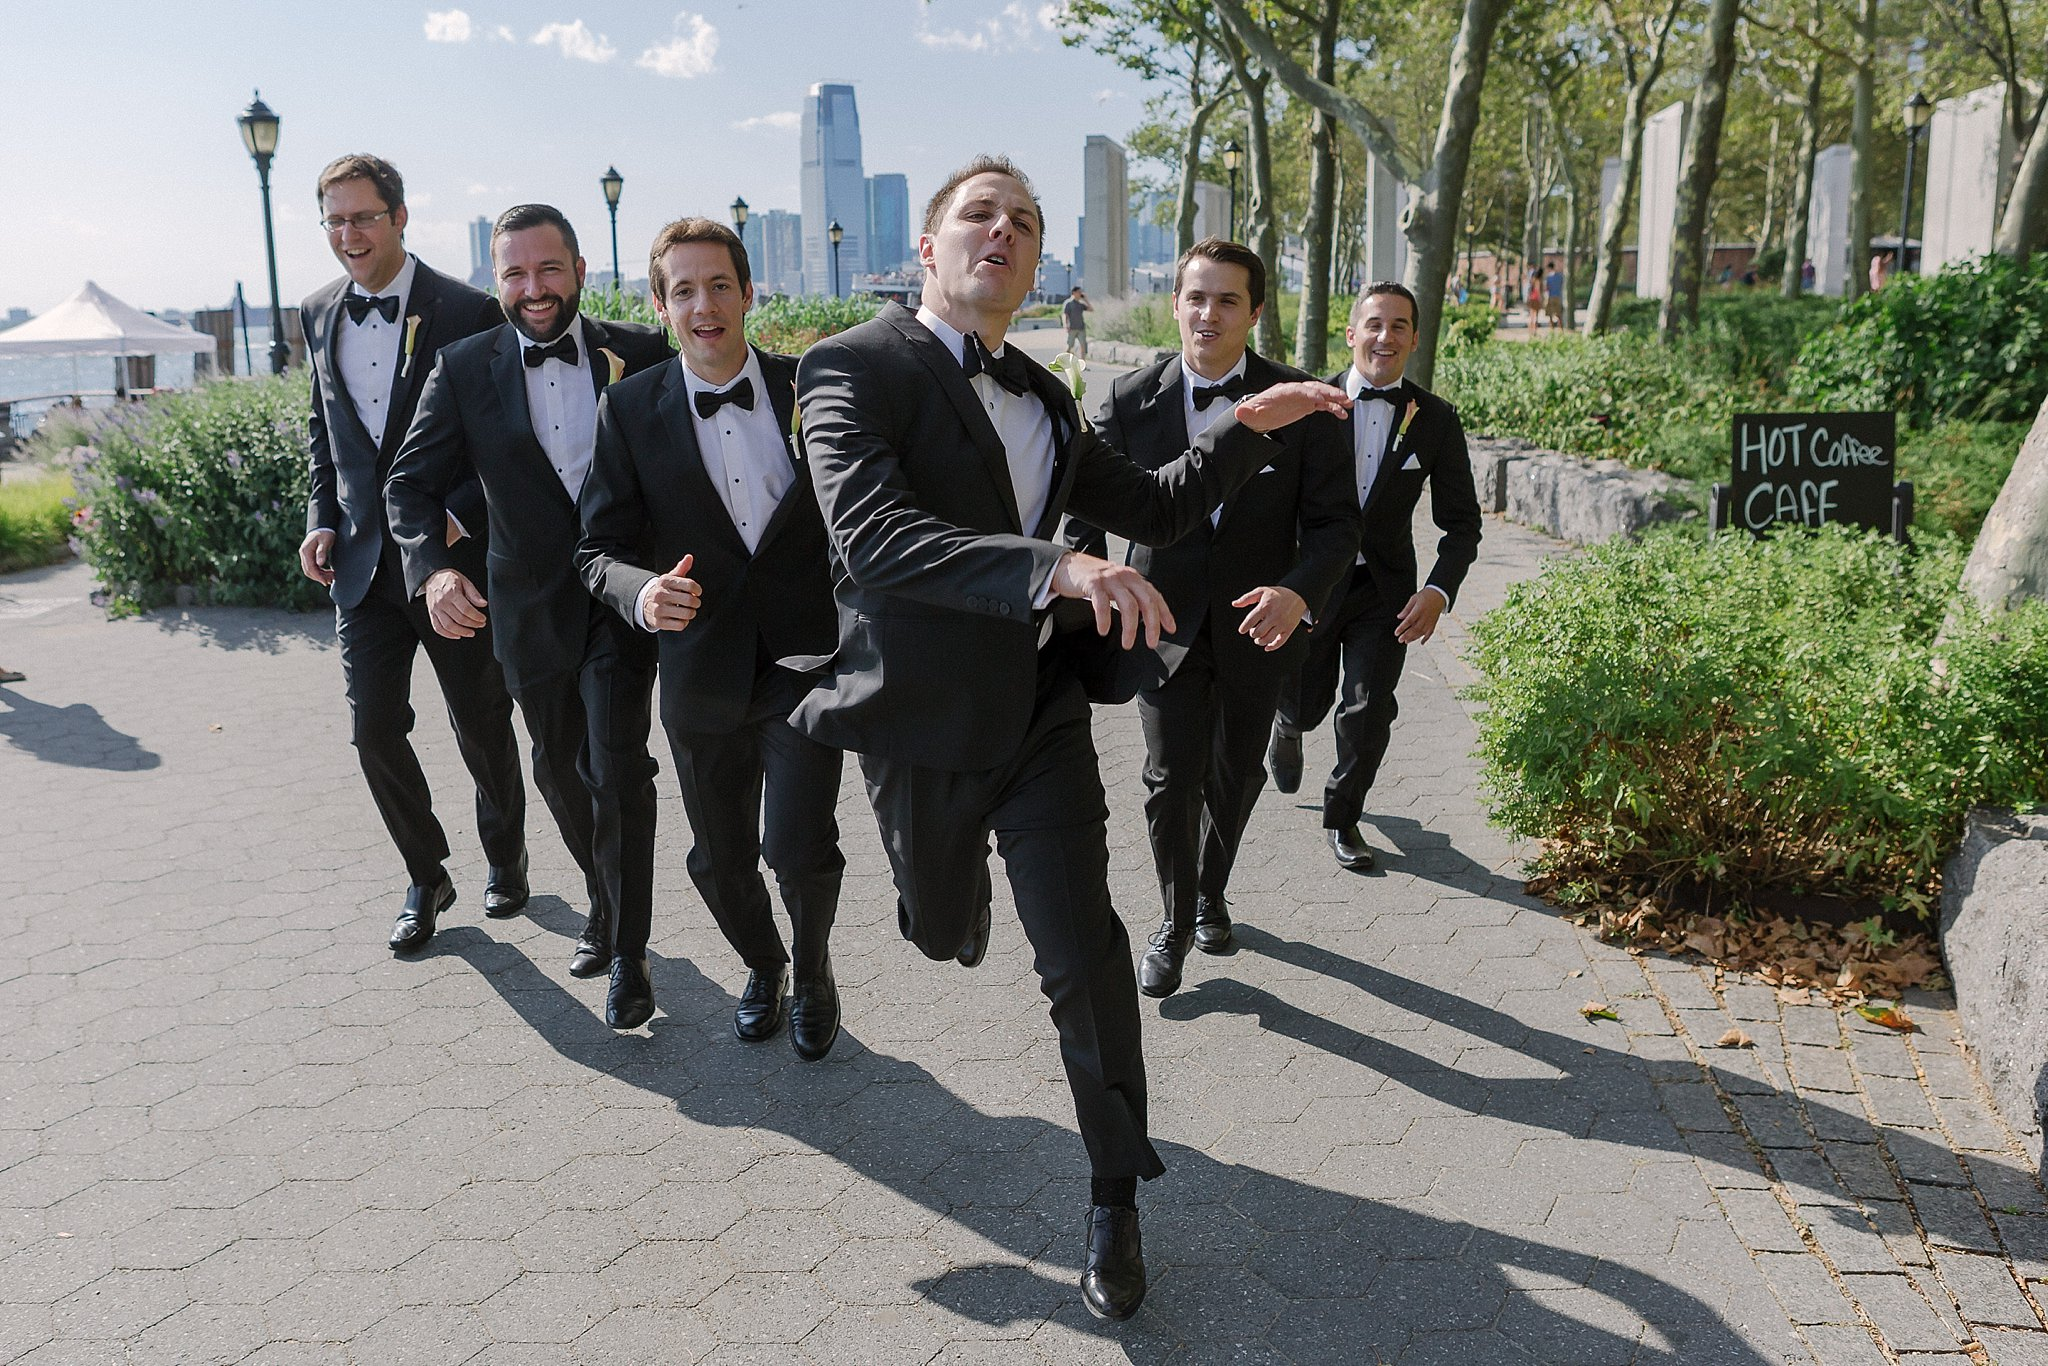 Groom and Groomsmen Fun Shoot during Susan Shek Wedding Photography in New York City, NY.